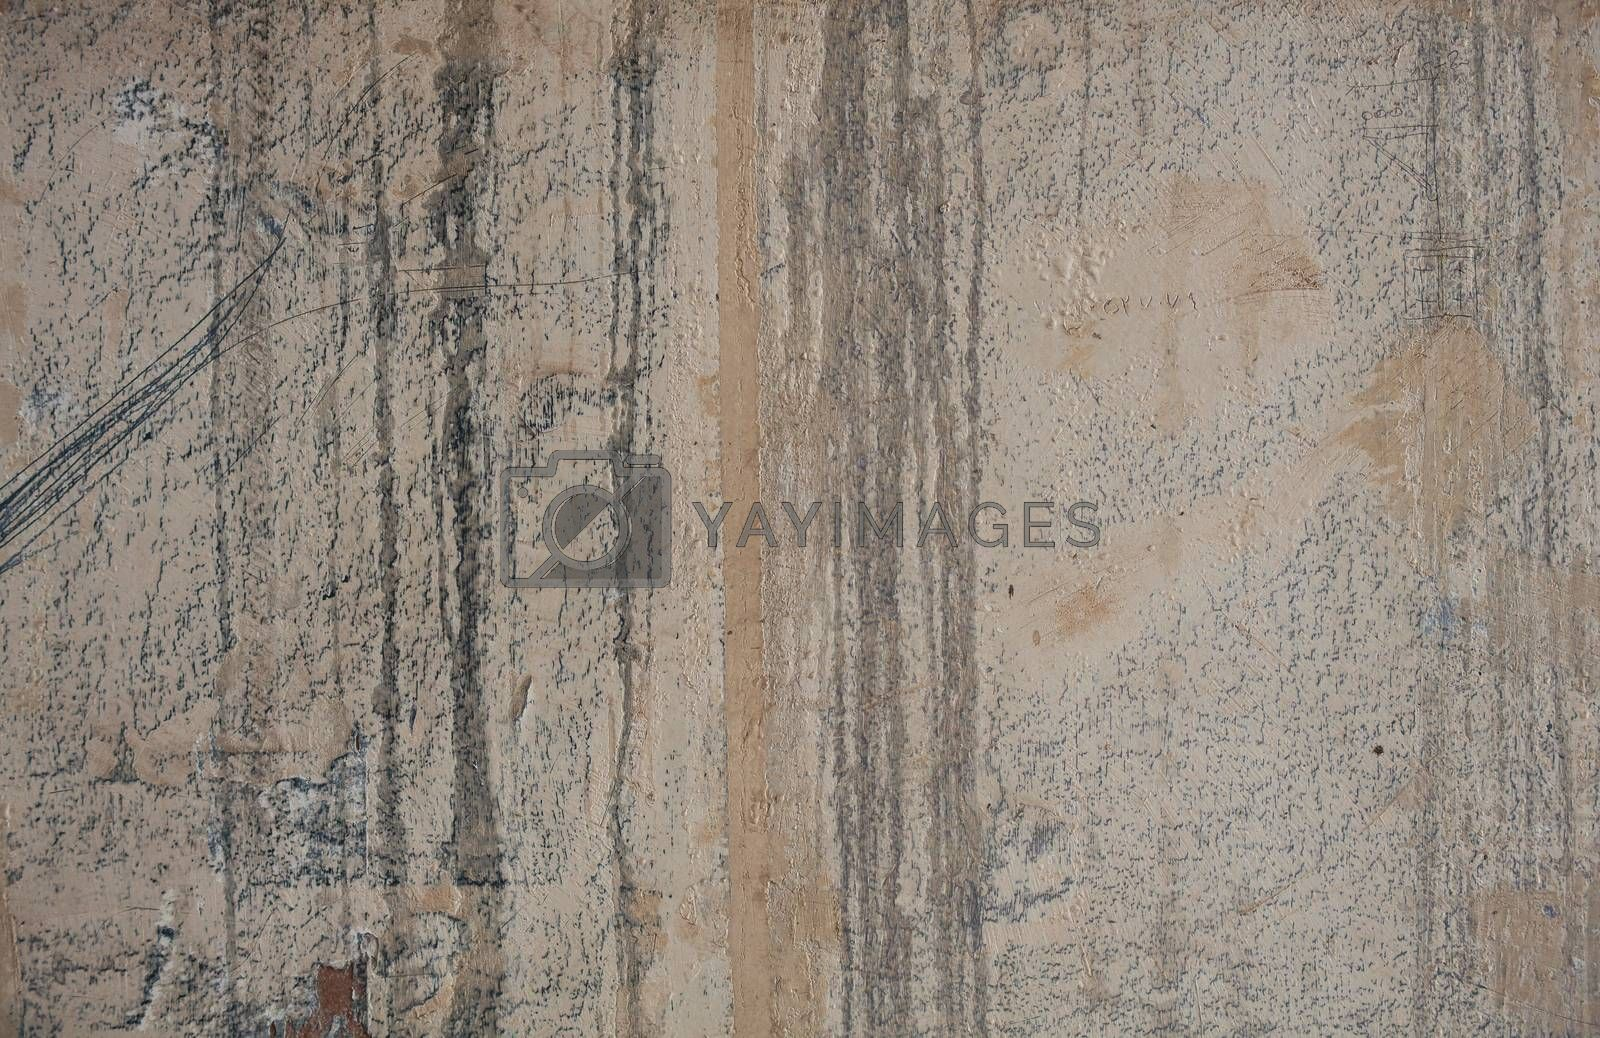 Grunge concrete cement wall by bepsimage